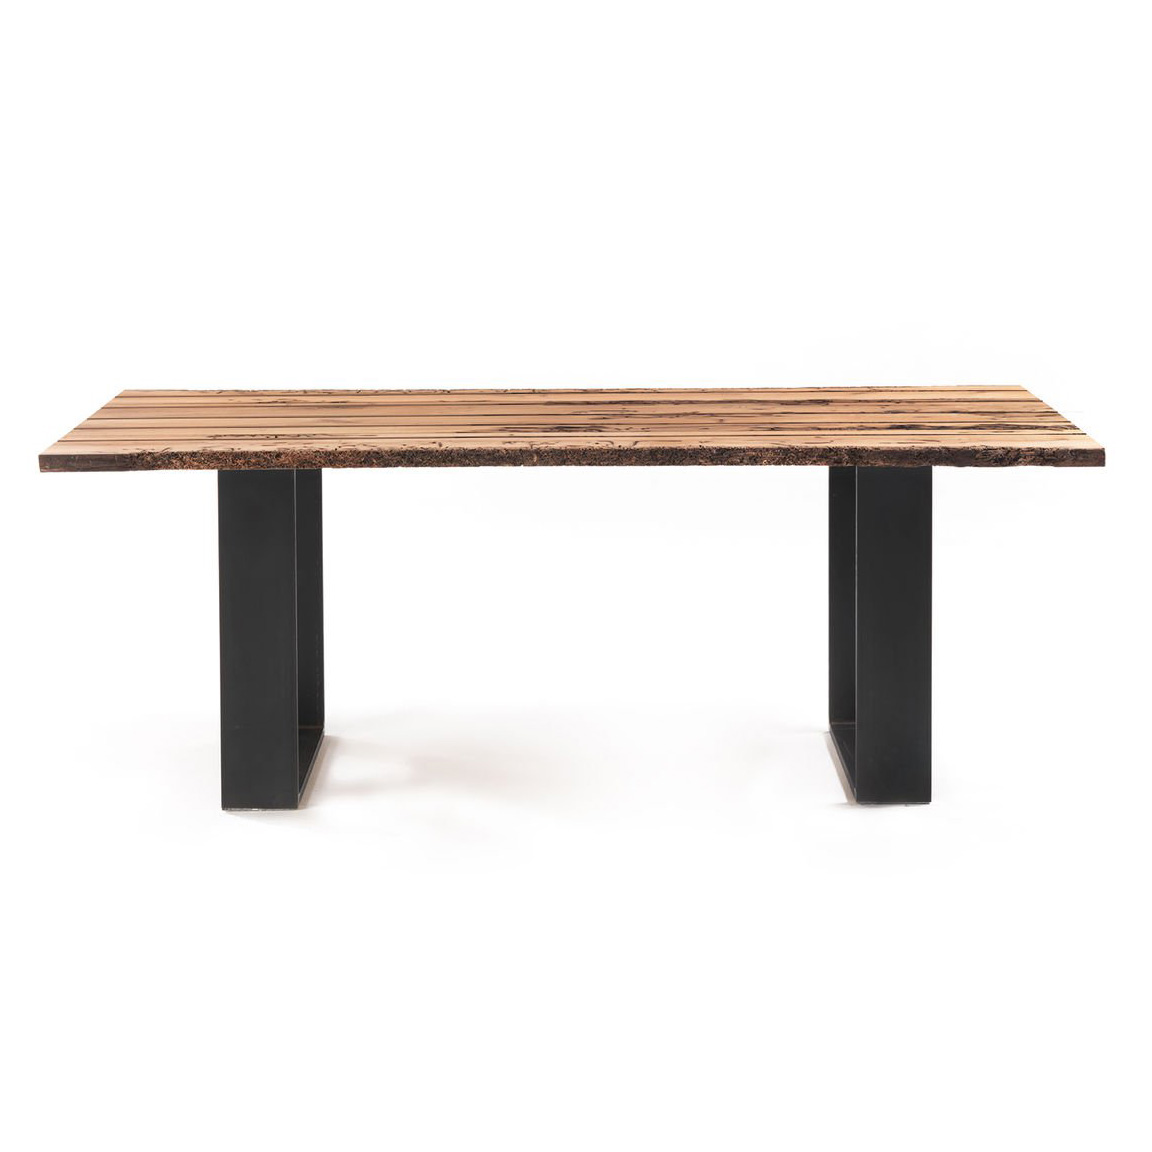 Newton Briccola dining table from Riva 1920, designed by C.R. & S. Riva 1920